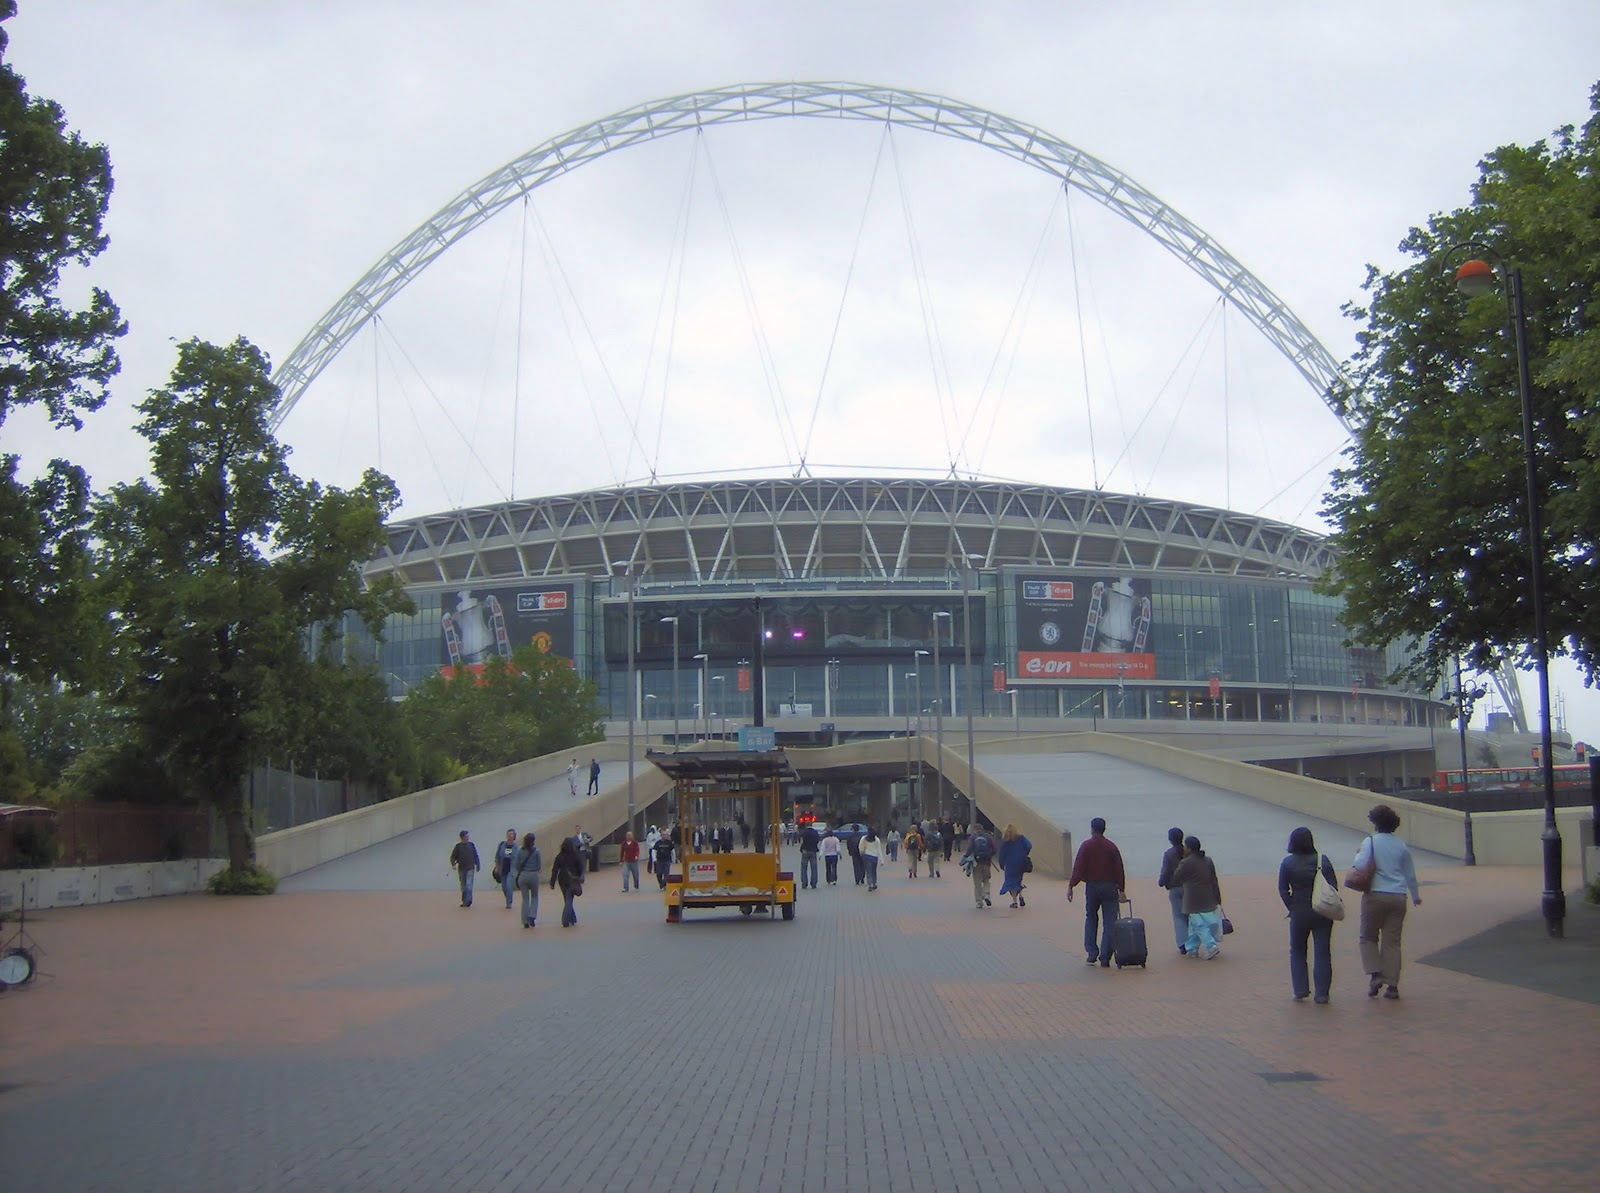 FULL WALLPAPER: 10. Wembley Stadium (90,000